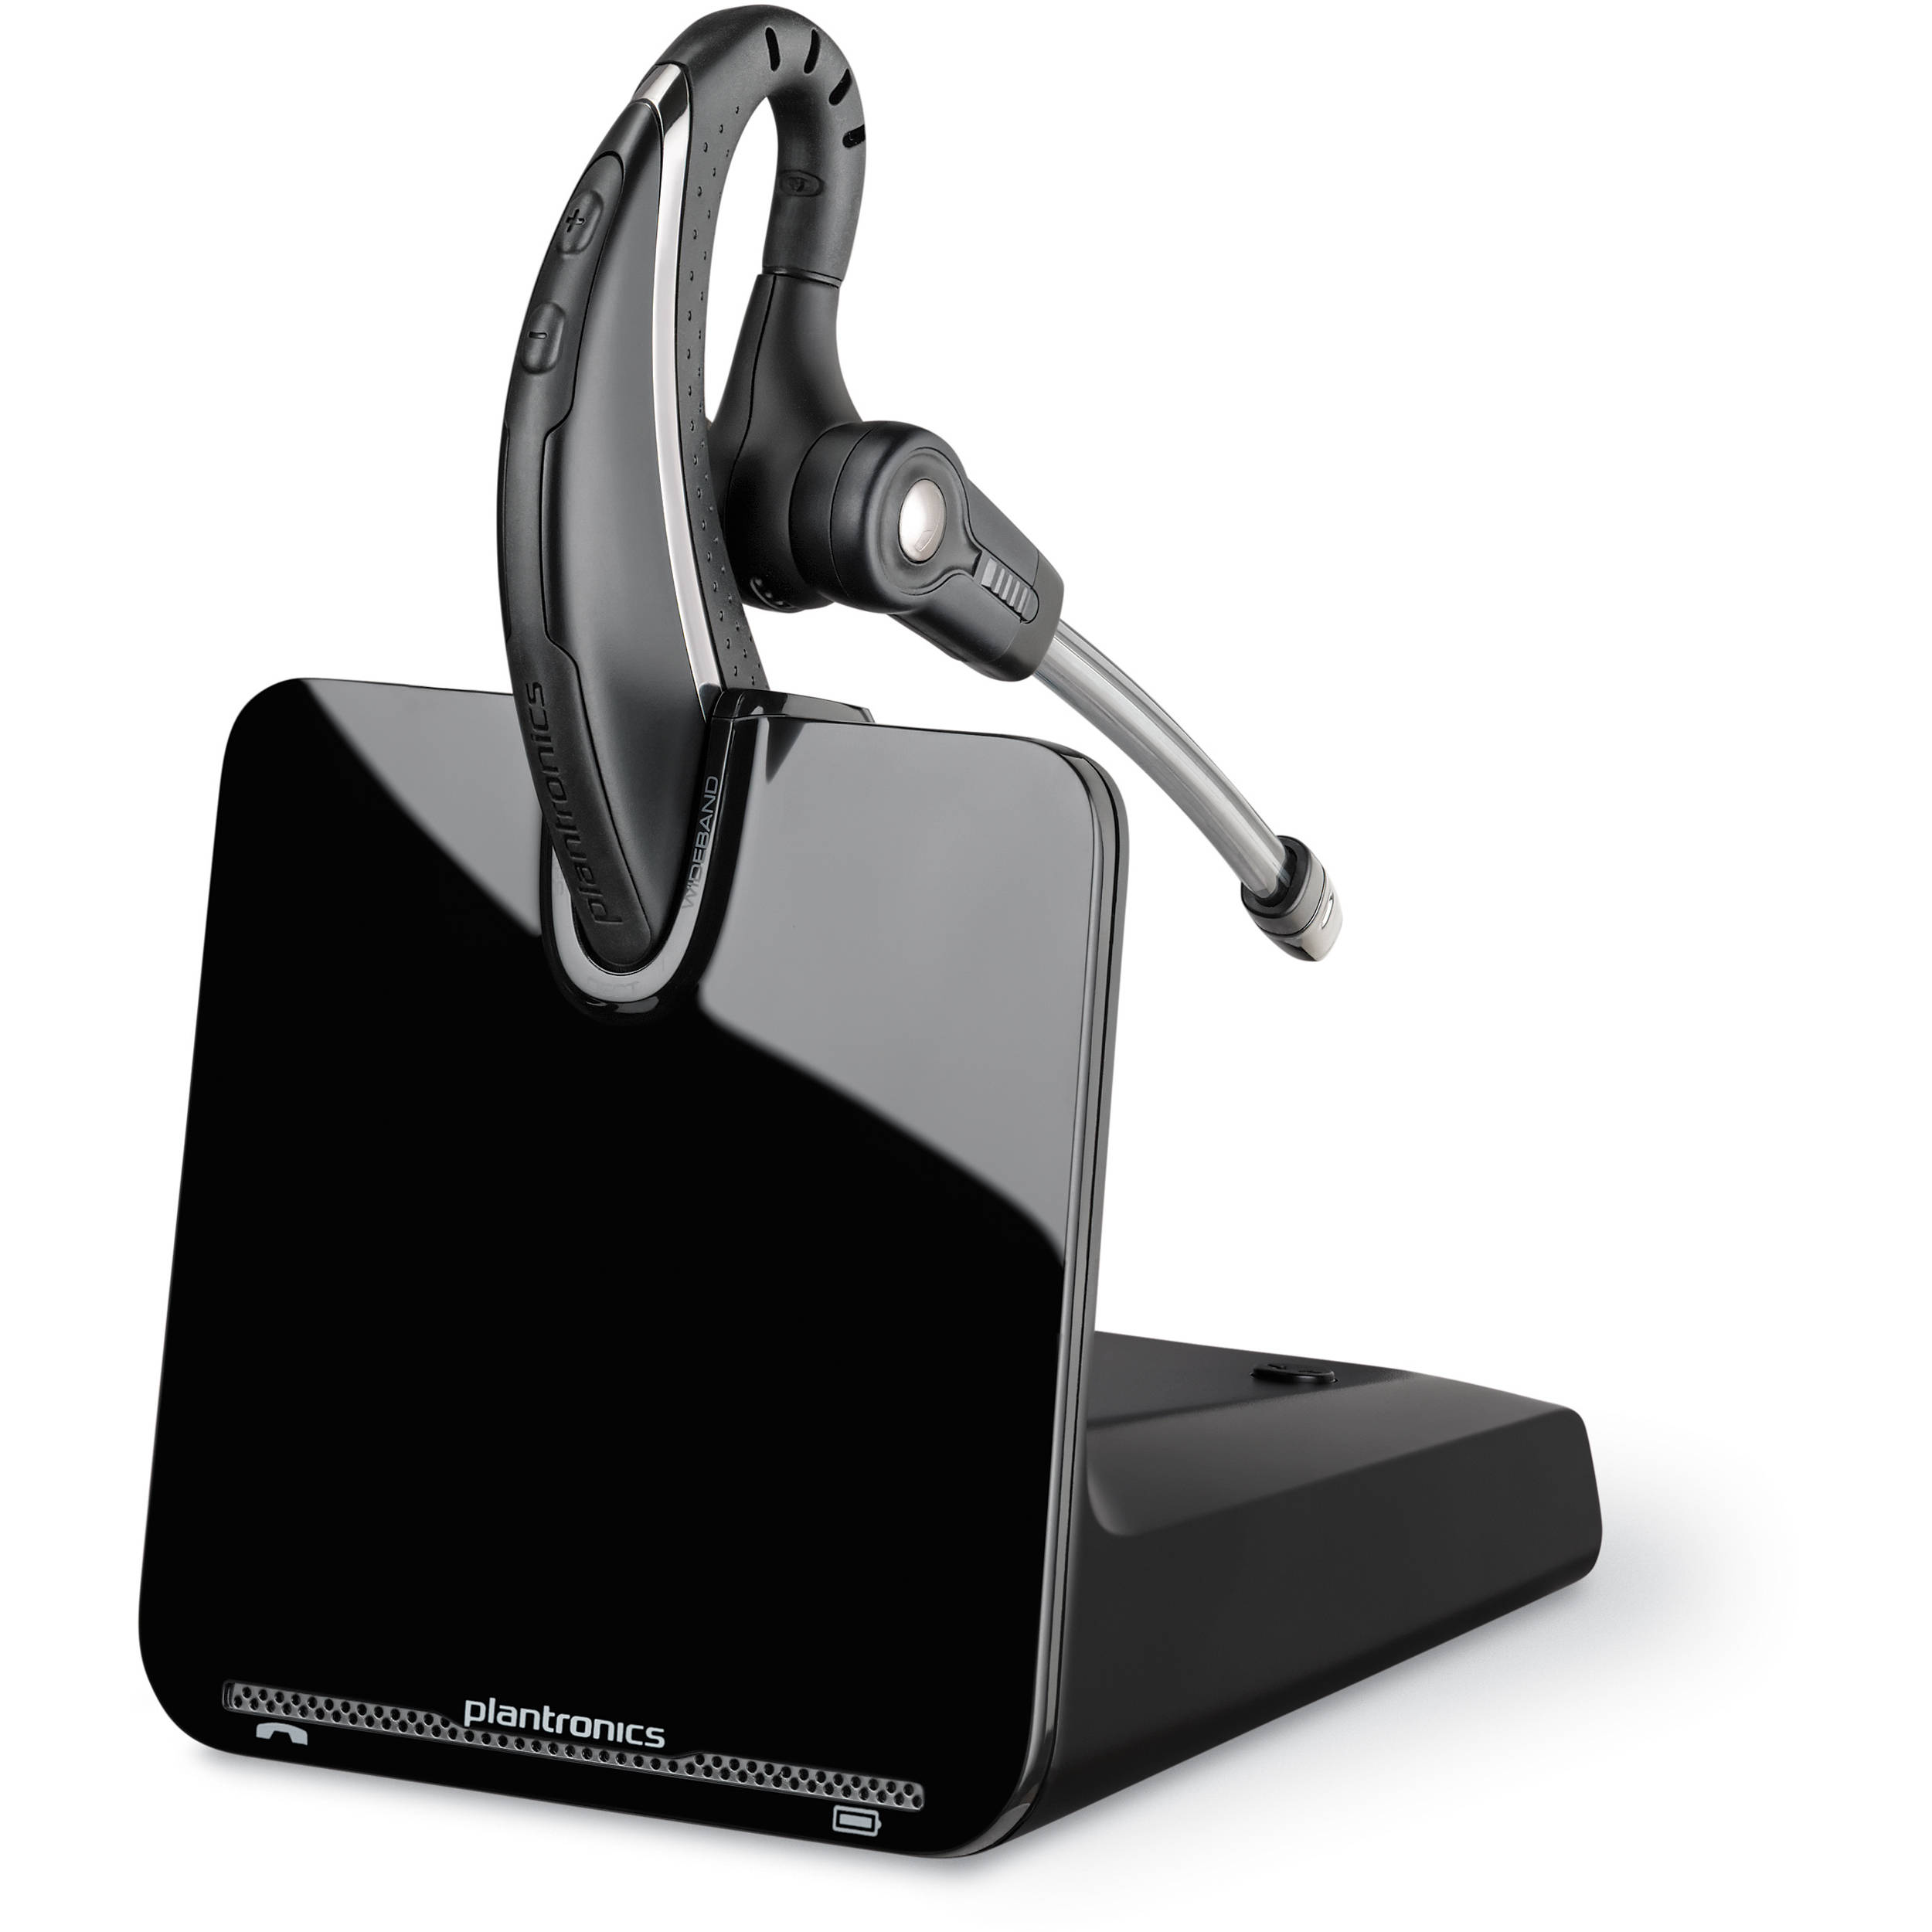 Plantronics Cs530 Over The Ear Wireless Headset 86305 01 B H